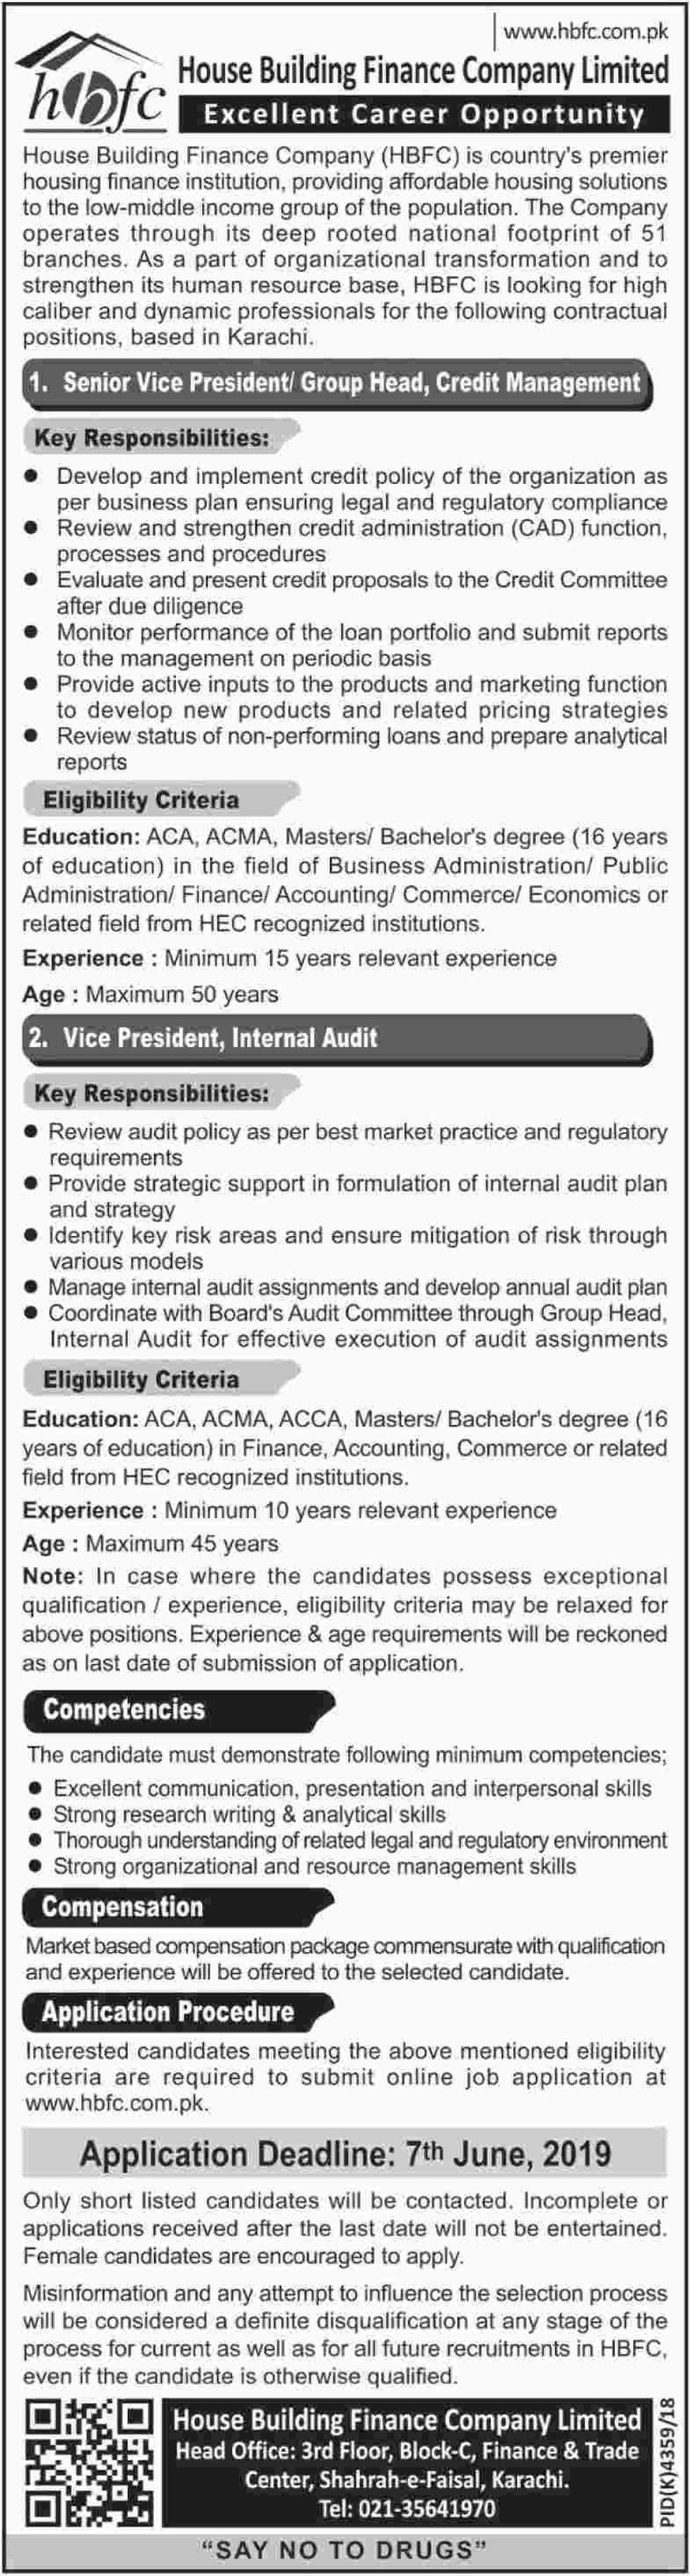 House Building Finance Company Ltd HBFC Jobs 2019 Latest